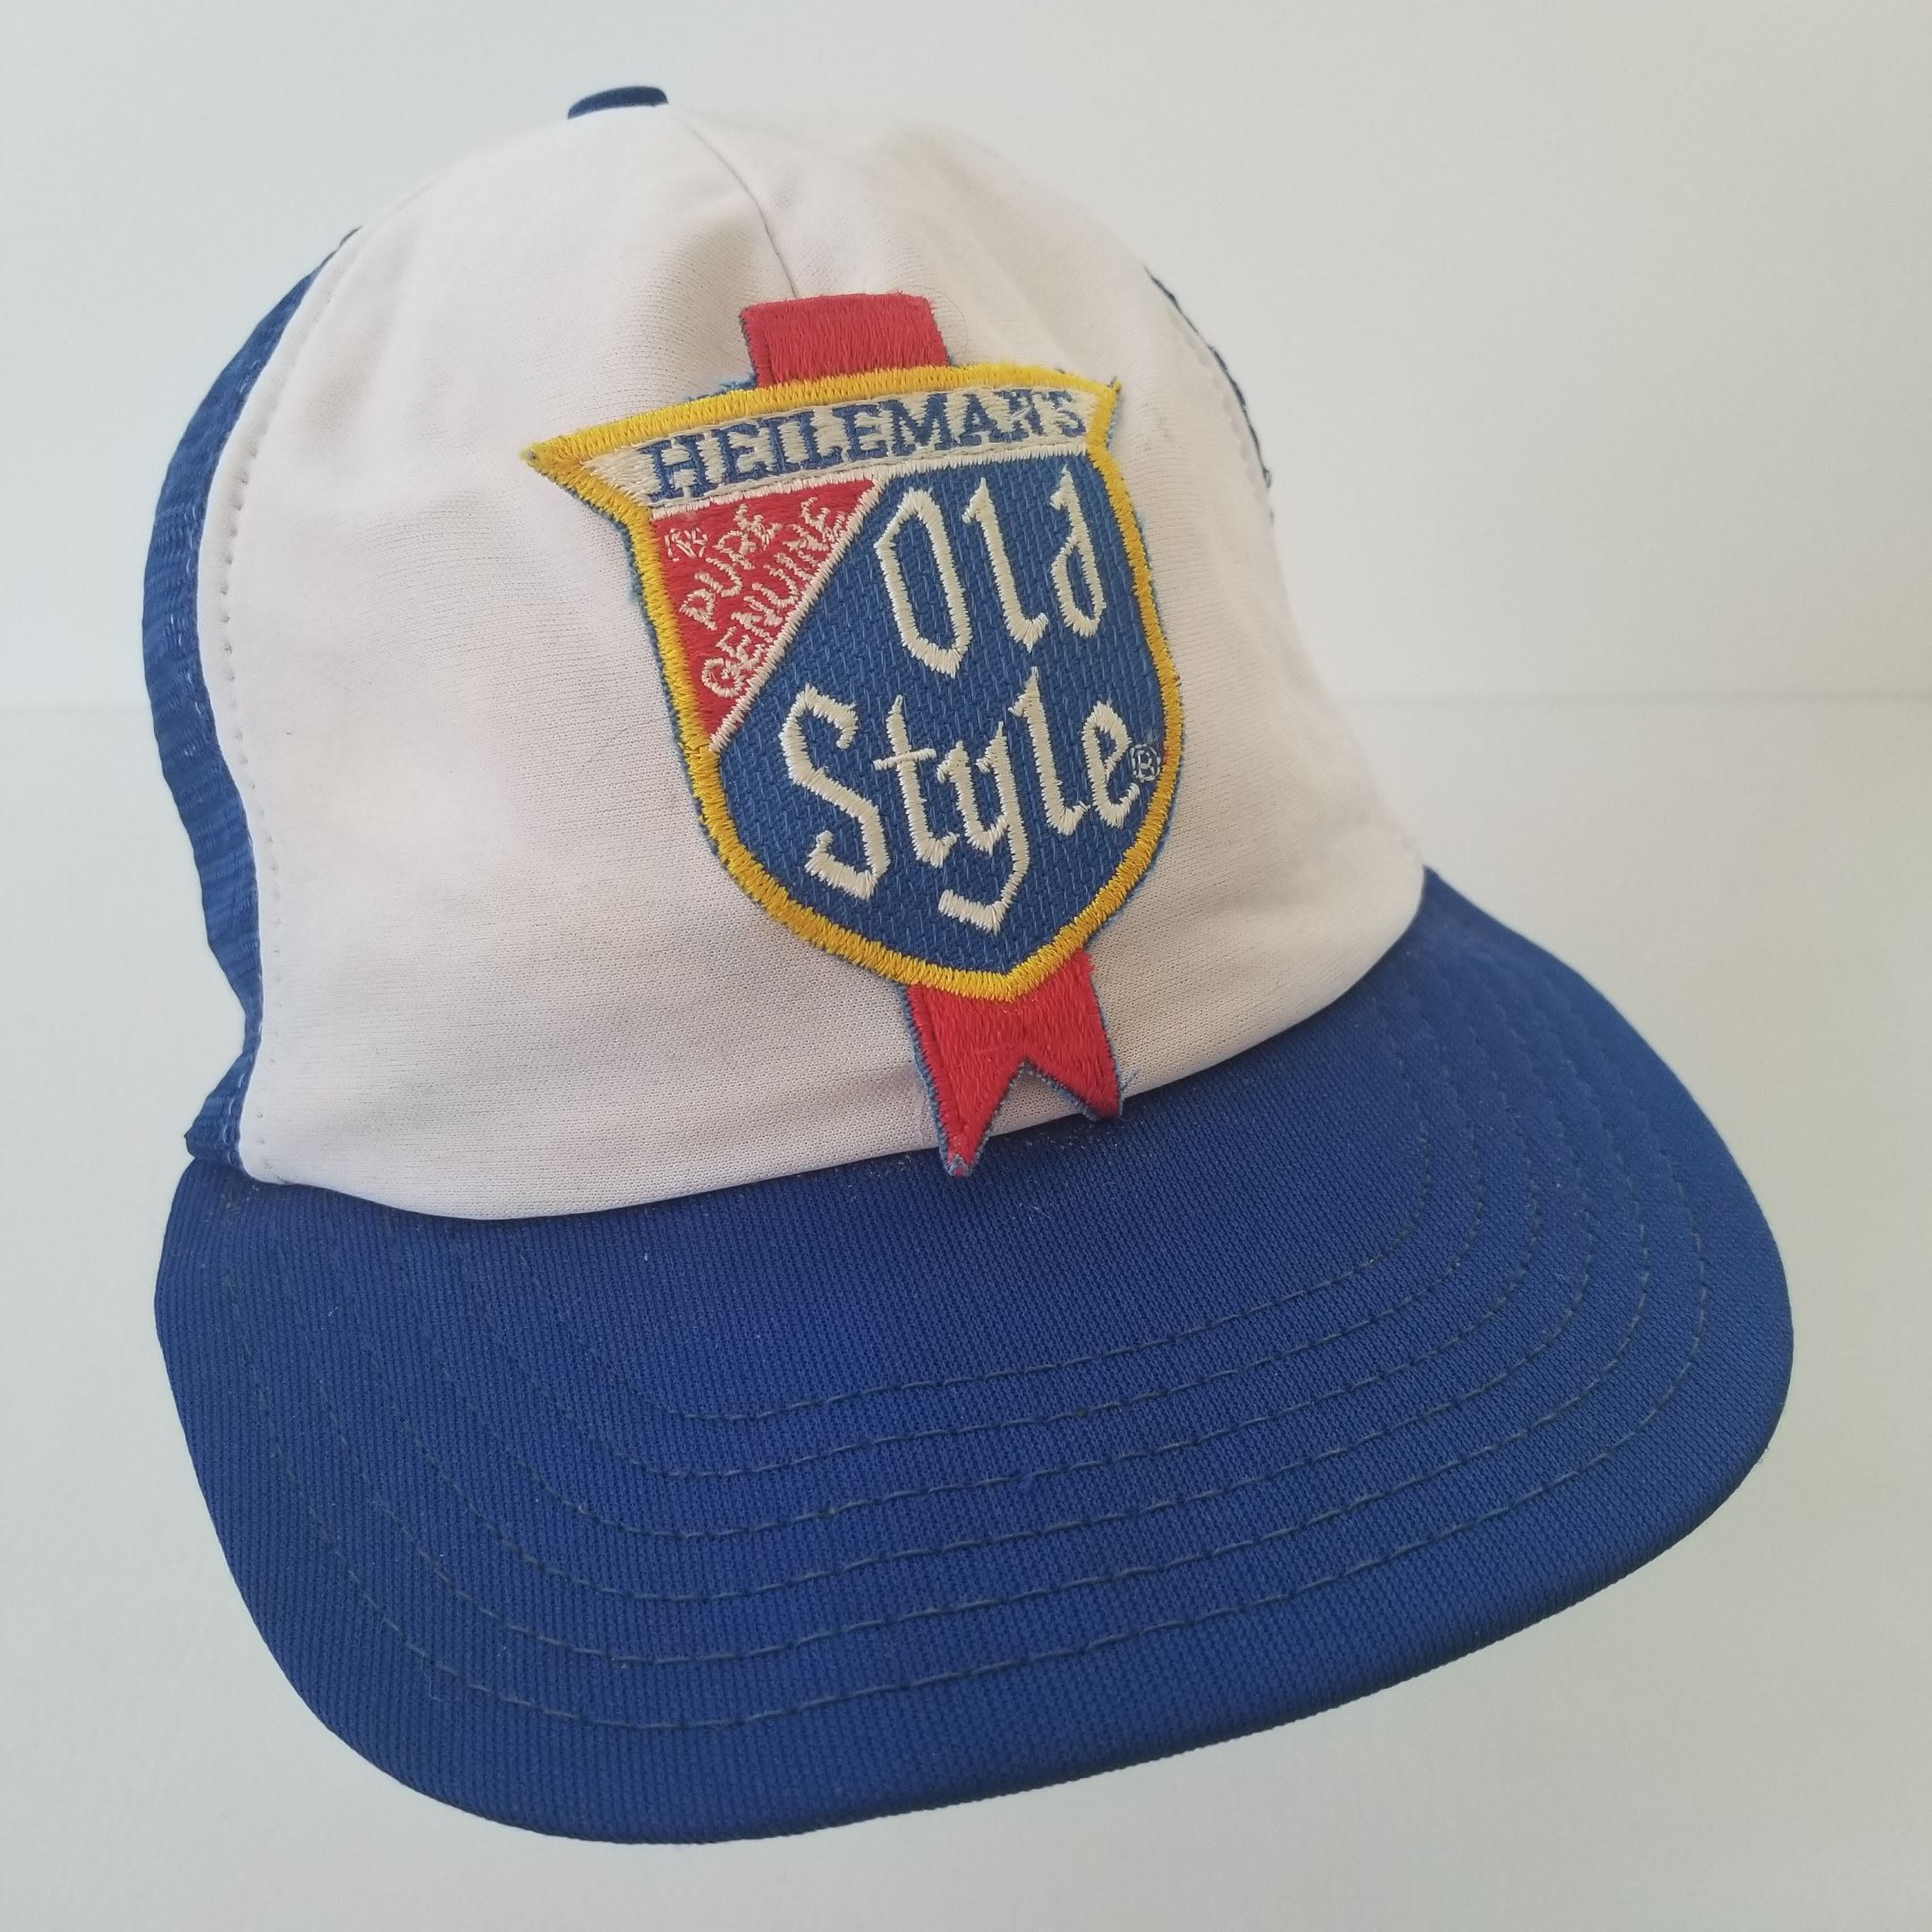 06a1c8b5eb4f1 Vintage Heilemans Old Style Beer Patch Mesh Snapback Hat Cap Trucker Made  in USA Blue White